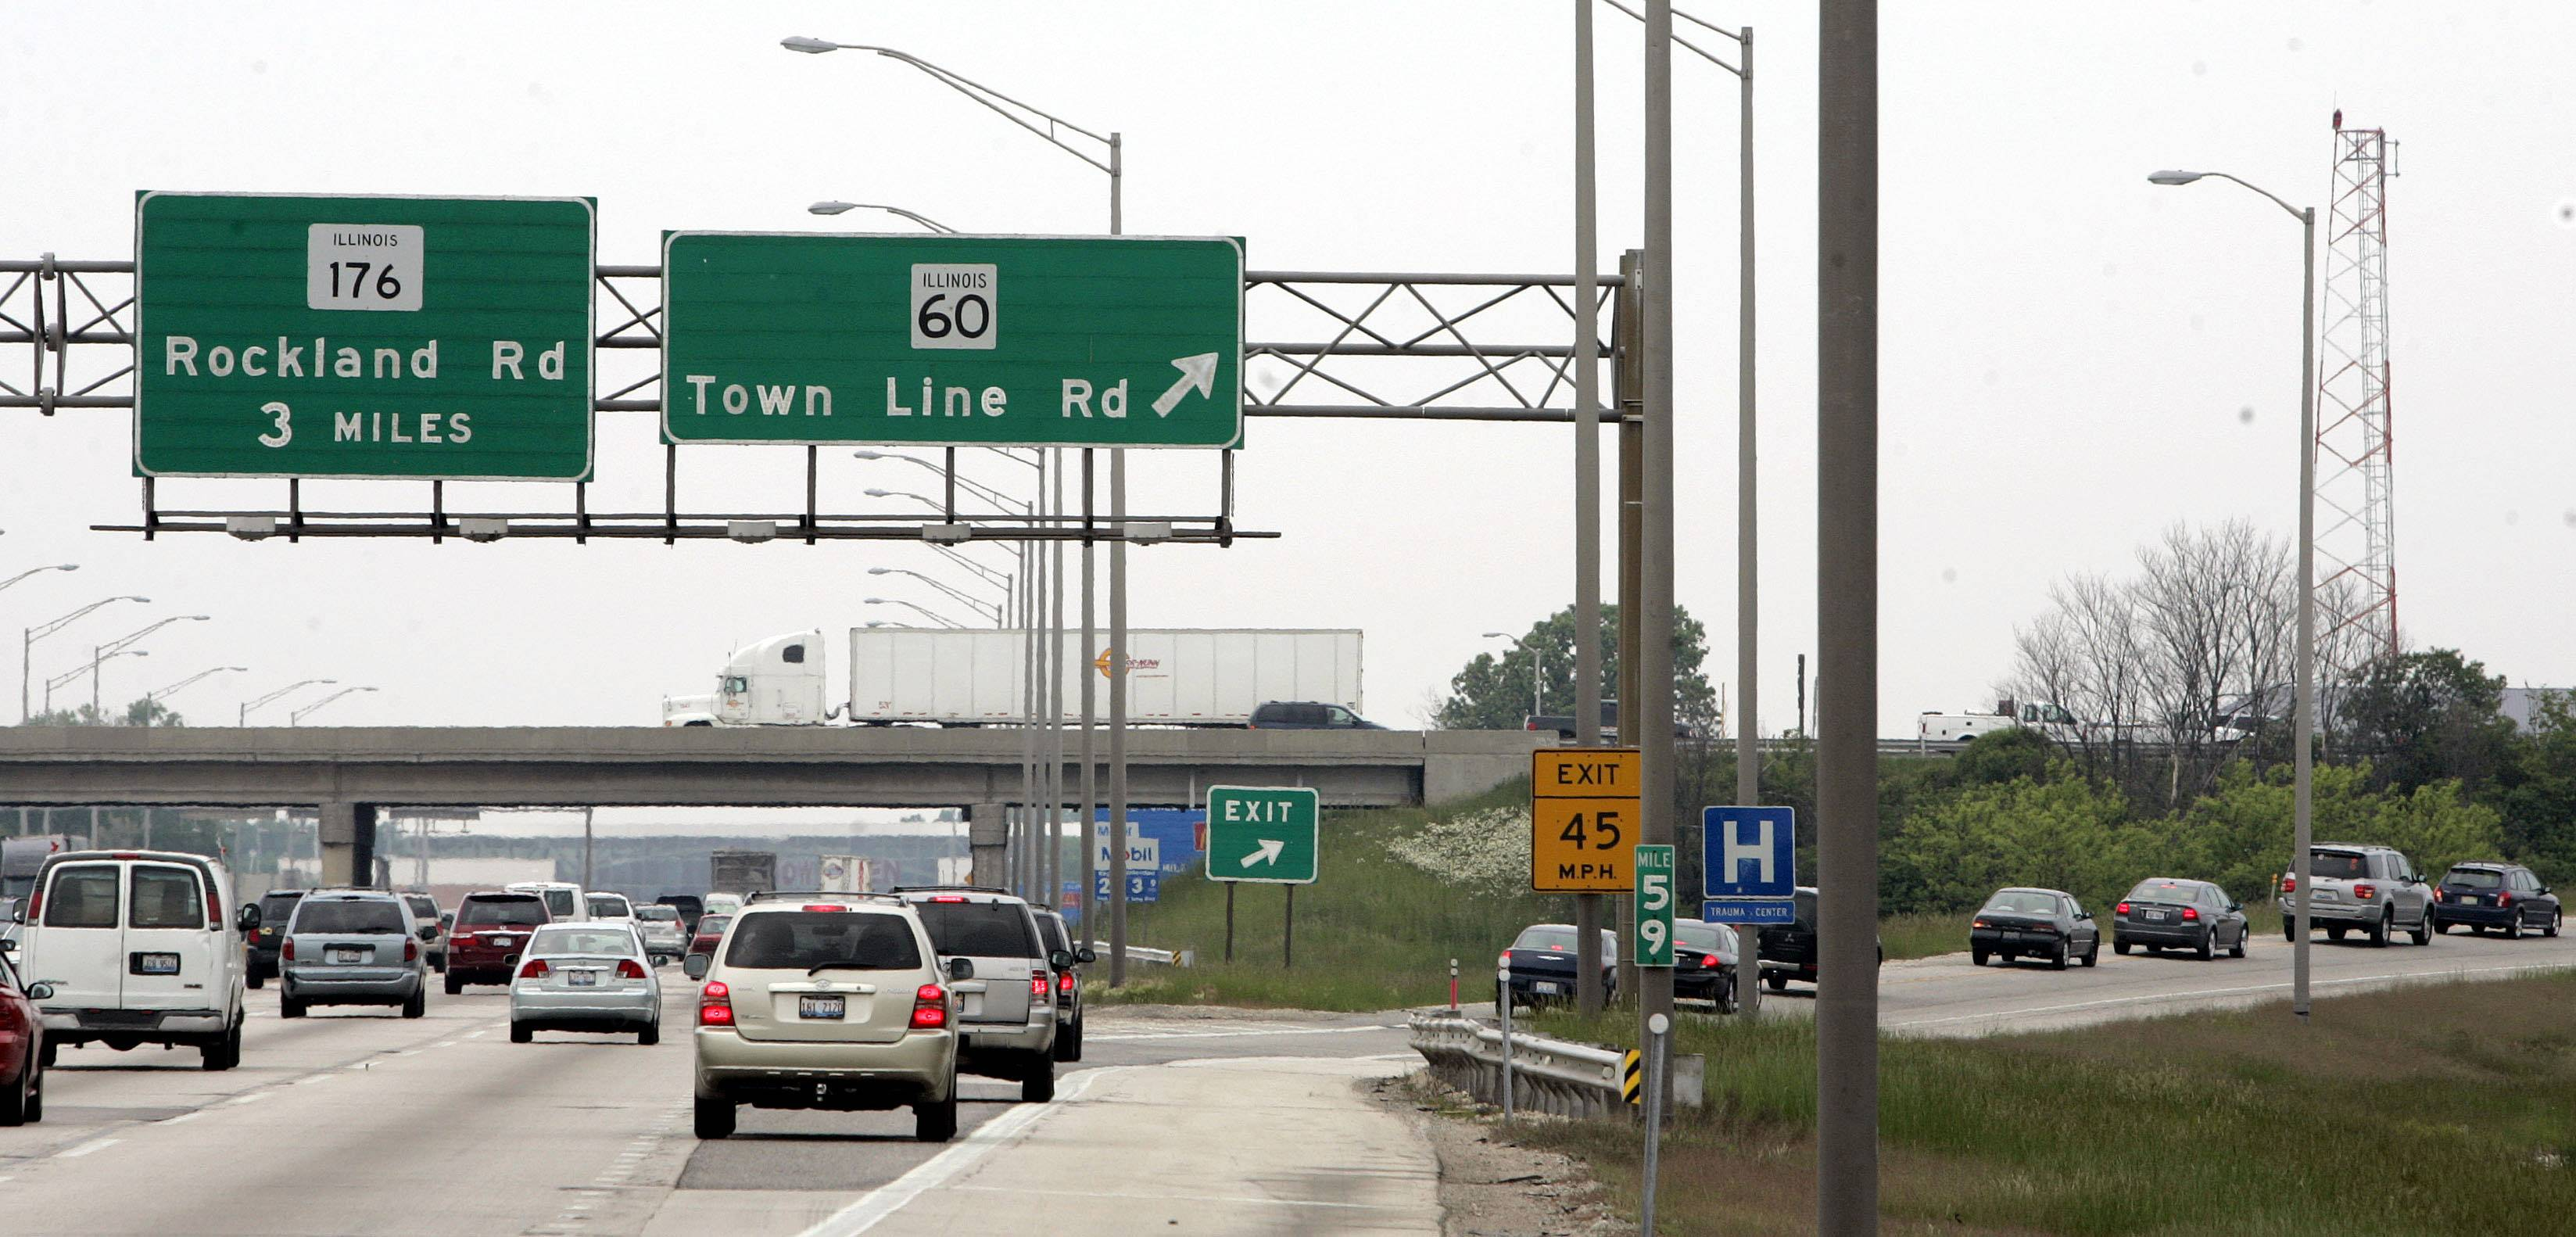 Motorists on the Illinois Tollway might one day be able to use a smartphone app to pay tolls automatically while driving. That's one of the technologies the agency wants to play with at a test site it plans to set up on a section of the Tri-State Tollway.